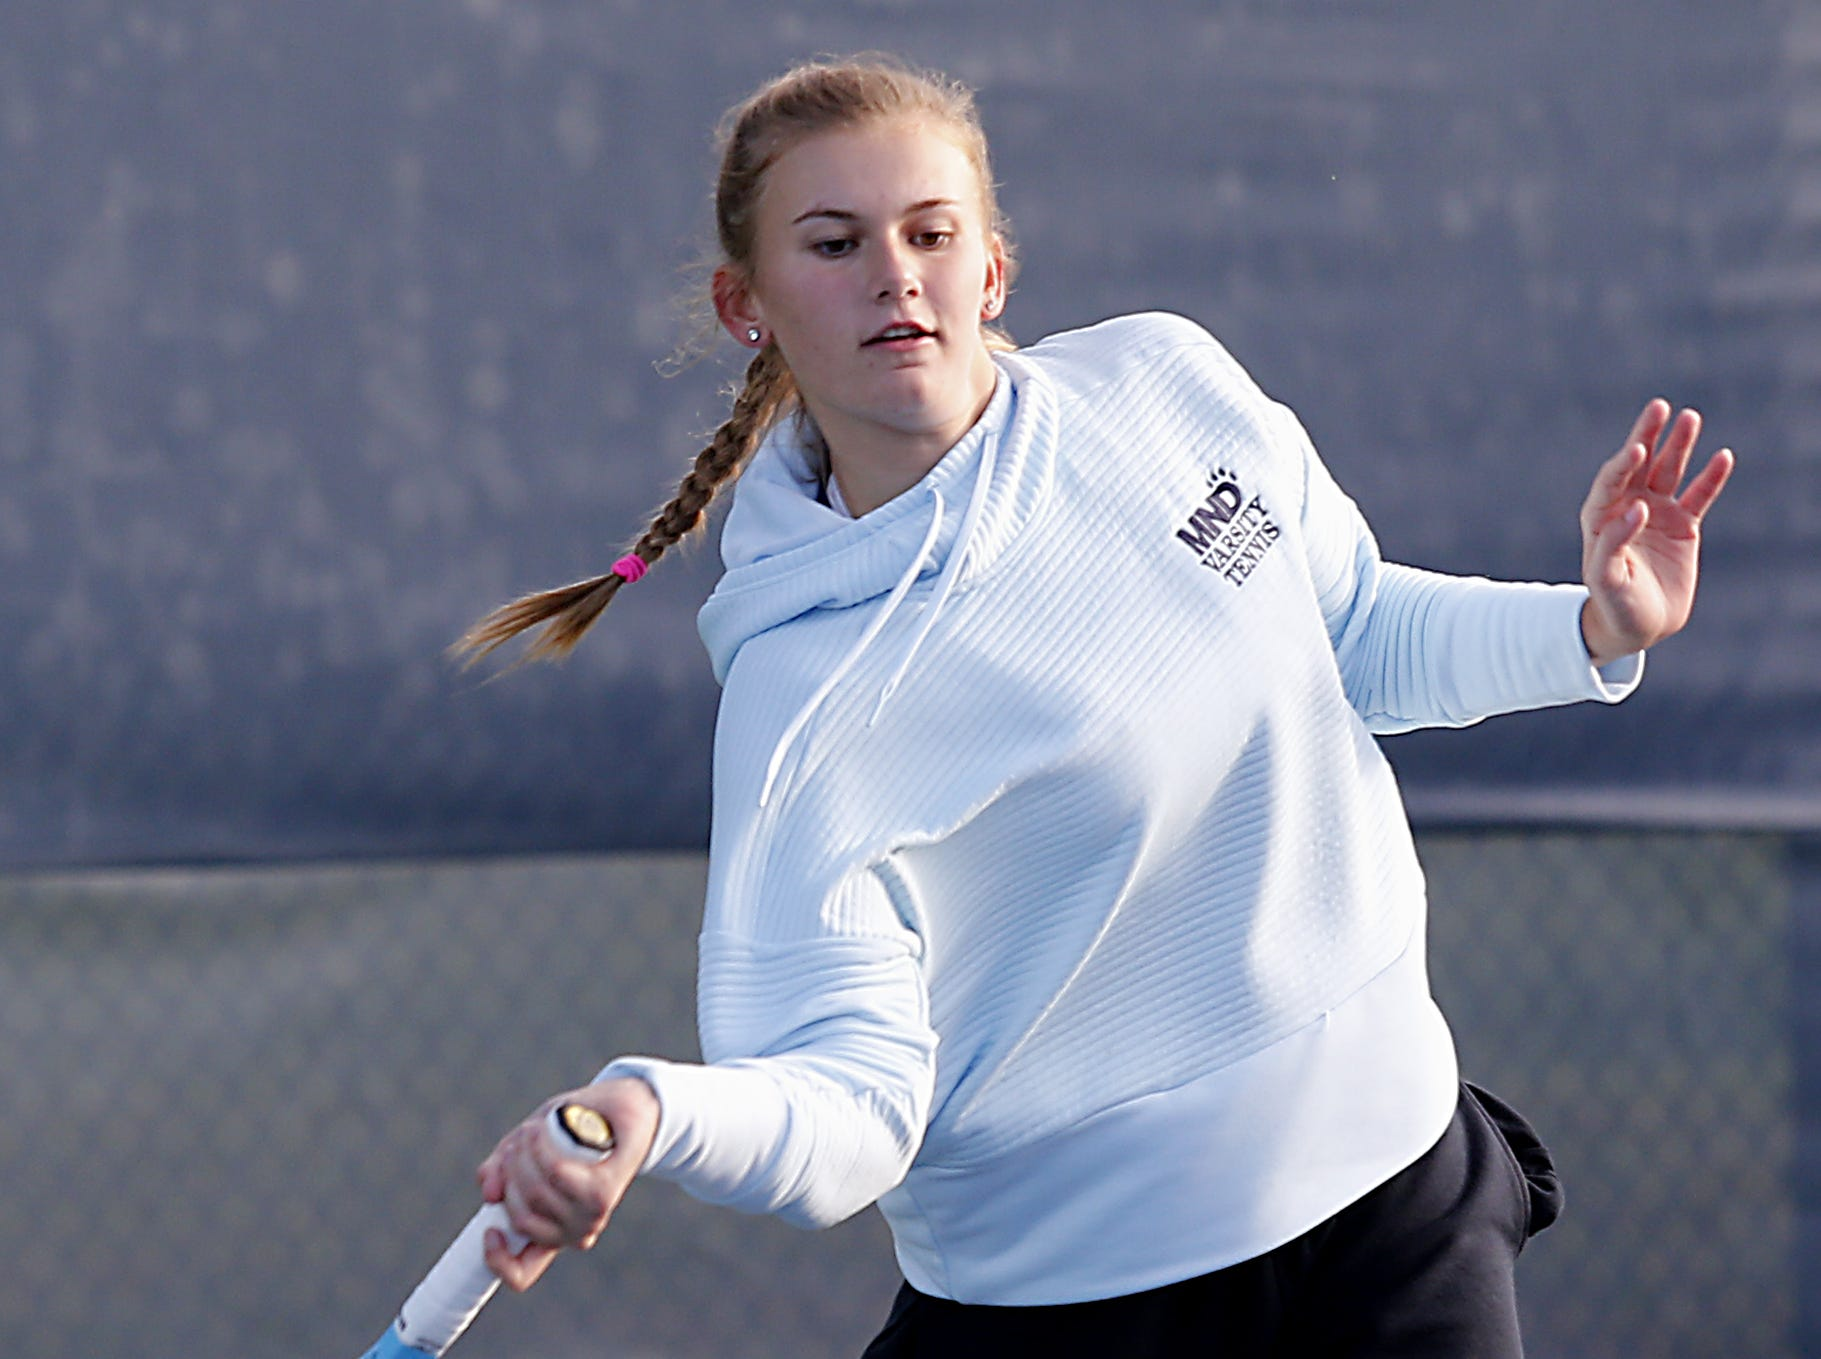 Kelli Niehaus of Mount Notre Dame returns a volley during her Division I singles bracket at the Lindner Family Tennis Center in Mason Friday, Oct. 19, 2018.